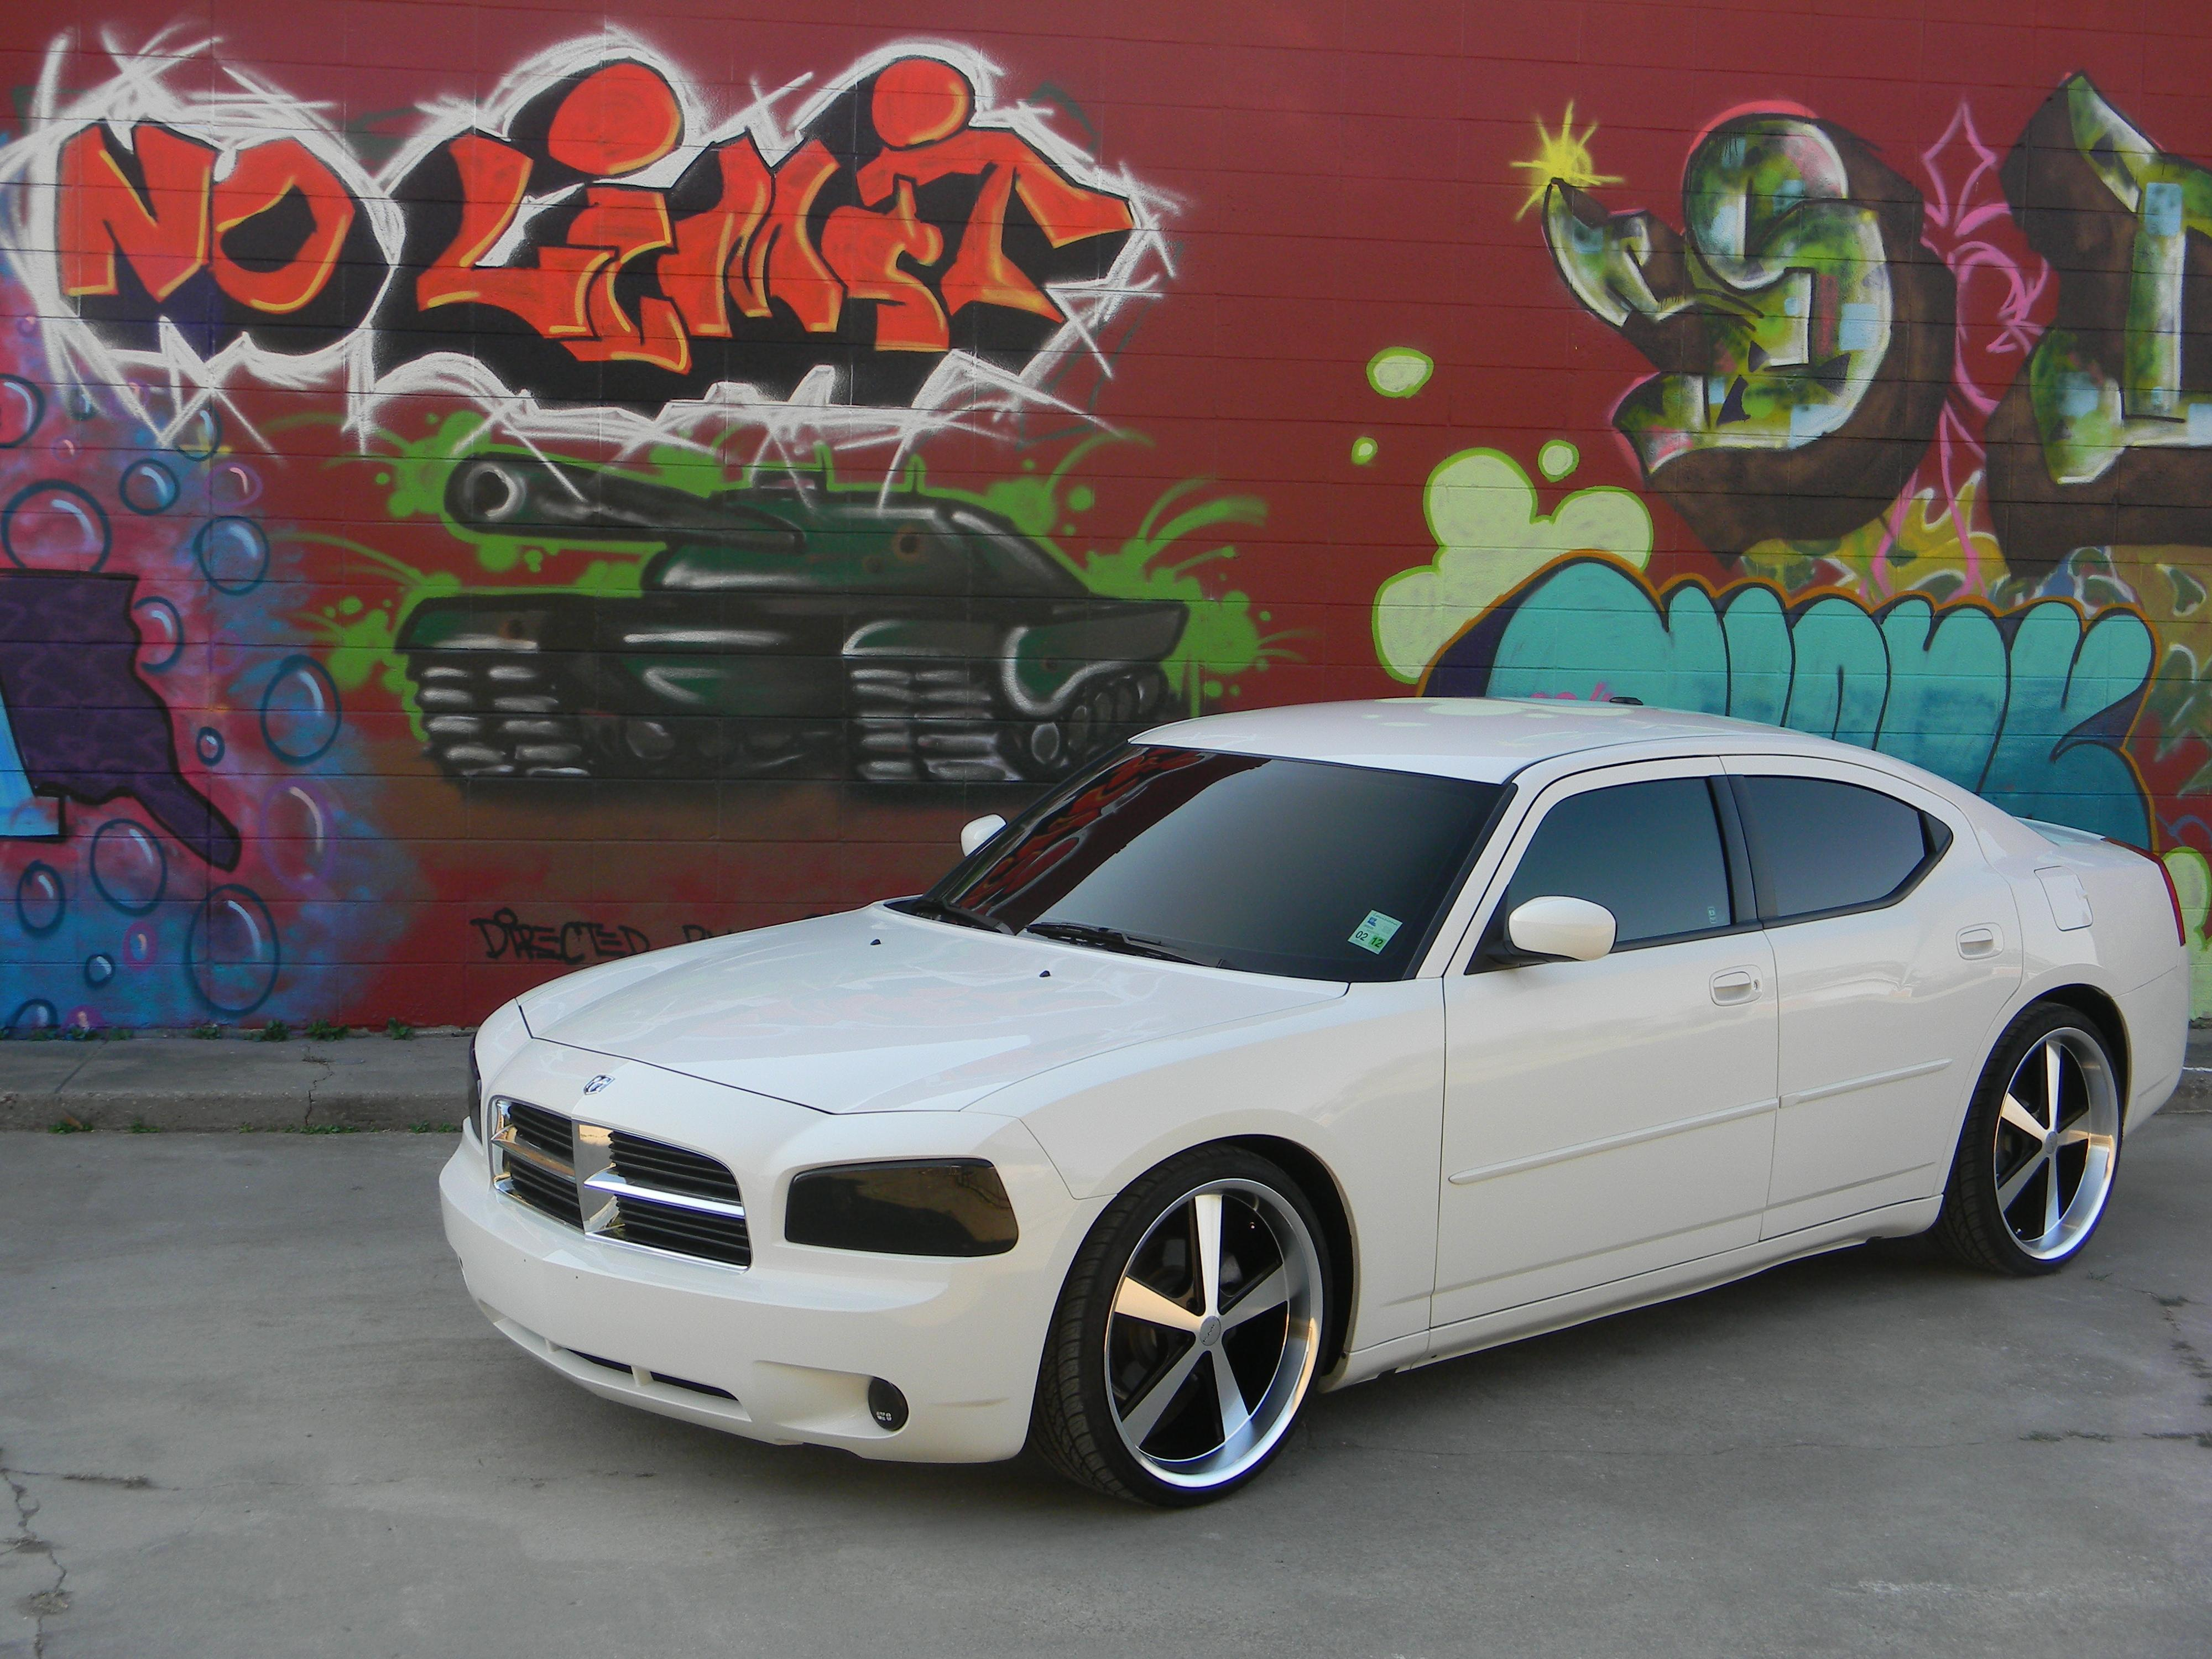 Smith2010's 2010 Dodge Charger